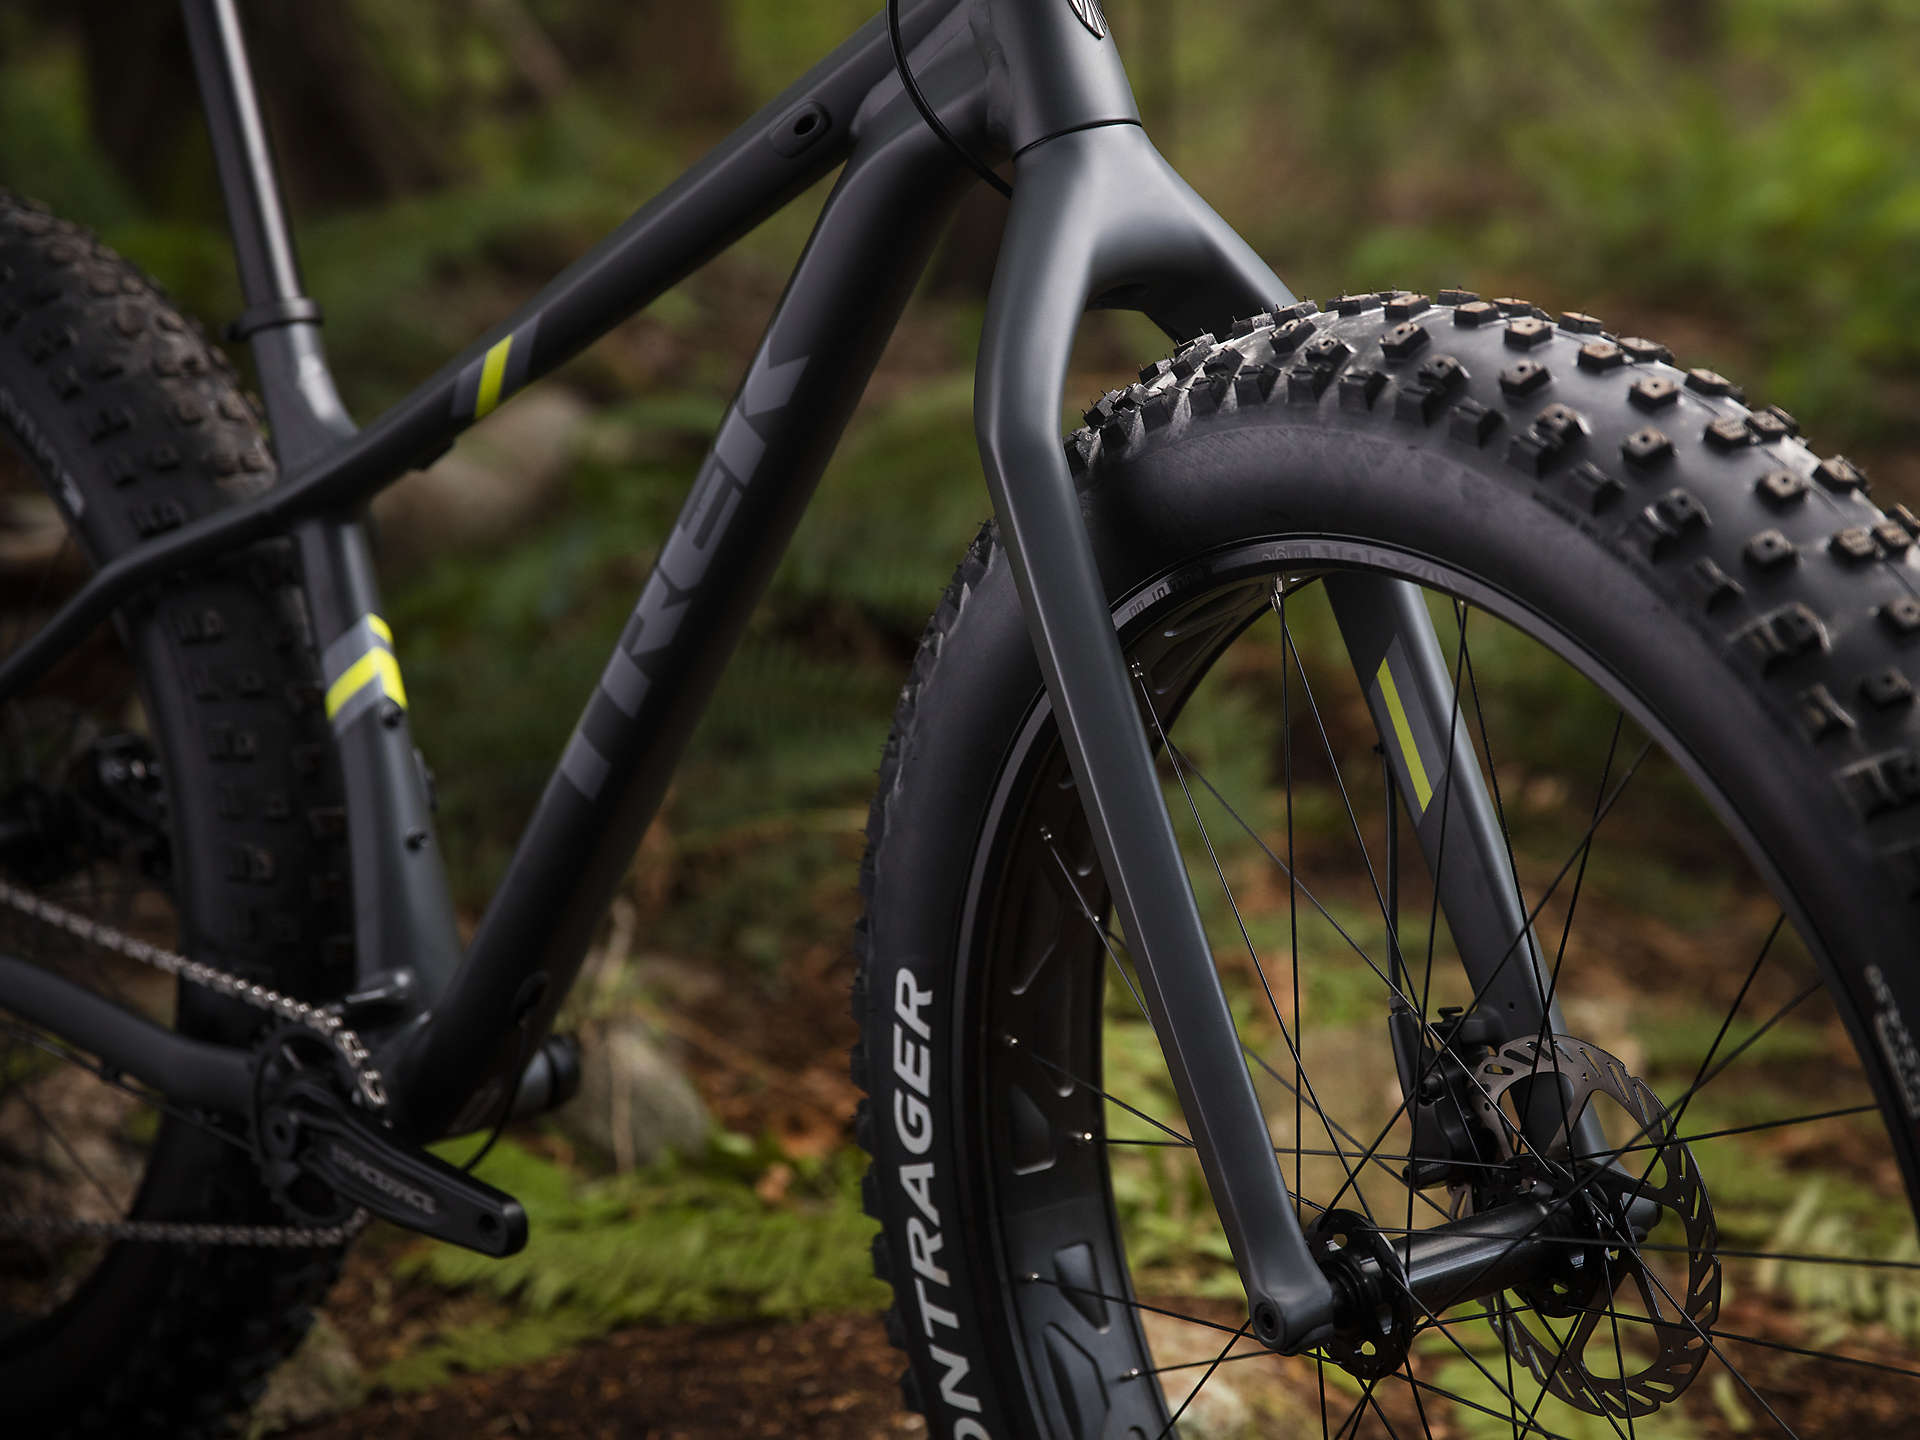 ac173356d26 The 2019 Trek Farley 5 is a rigid aluminium fat bike that rolls over snow,  sand, roots, and rocks with the stability and traction of a monster truck  on ...